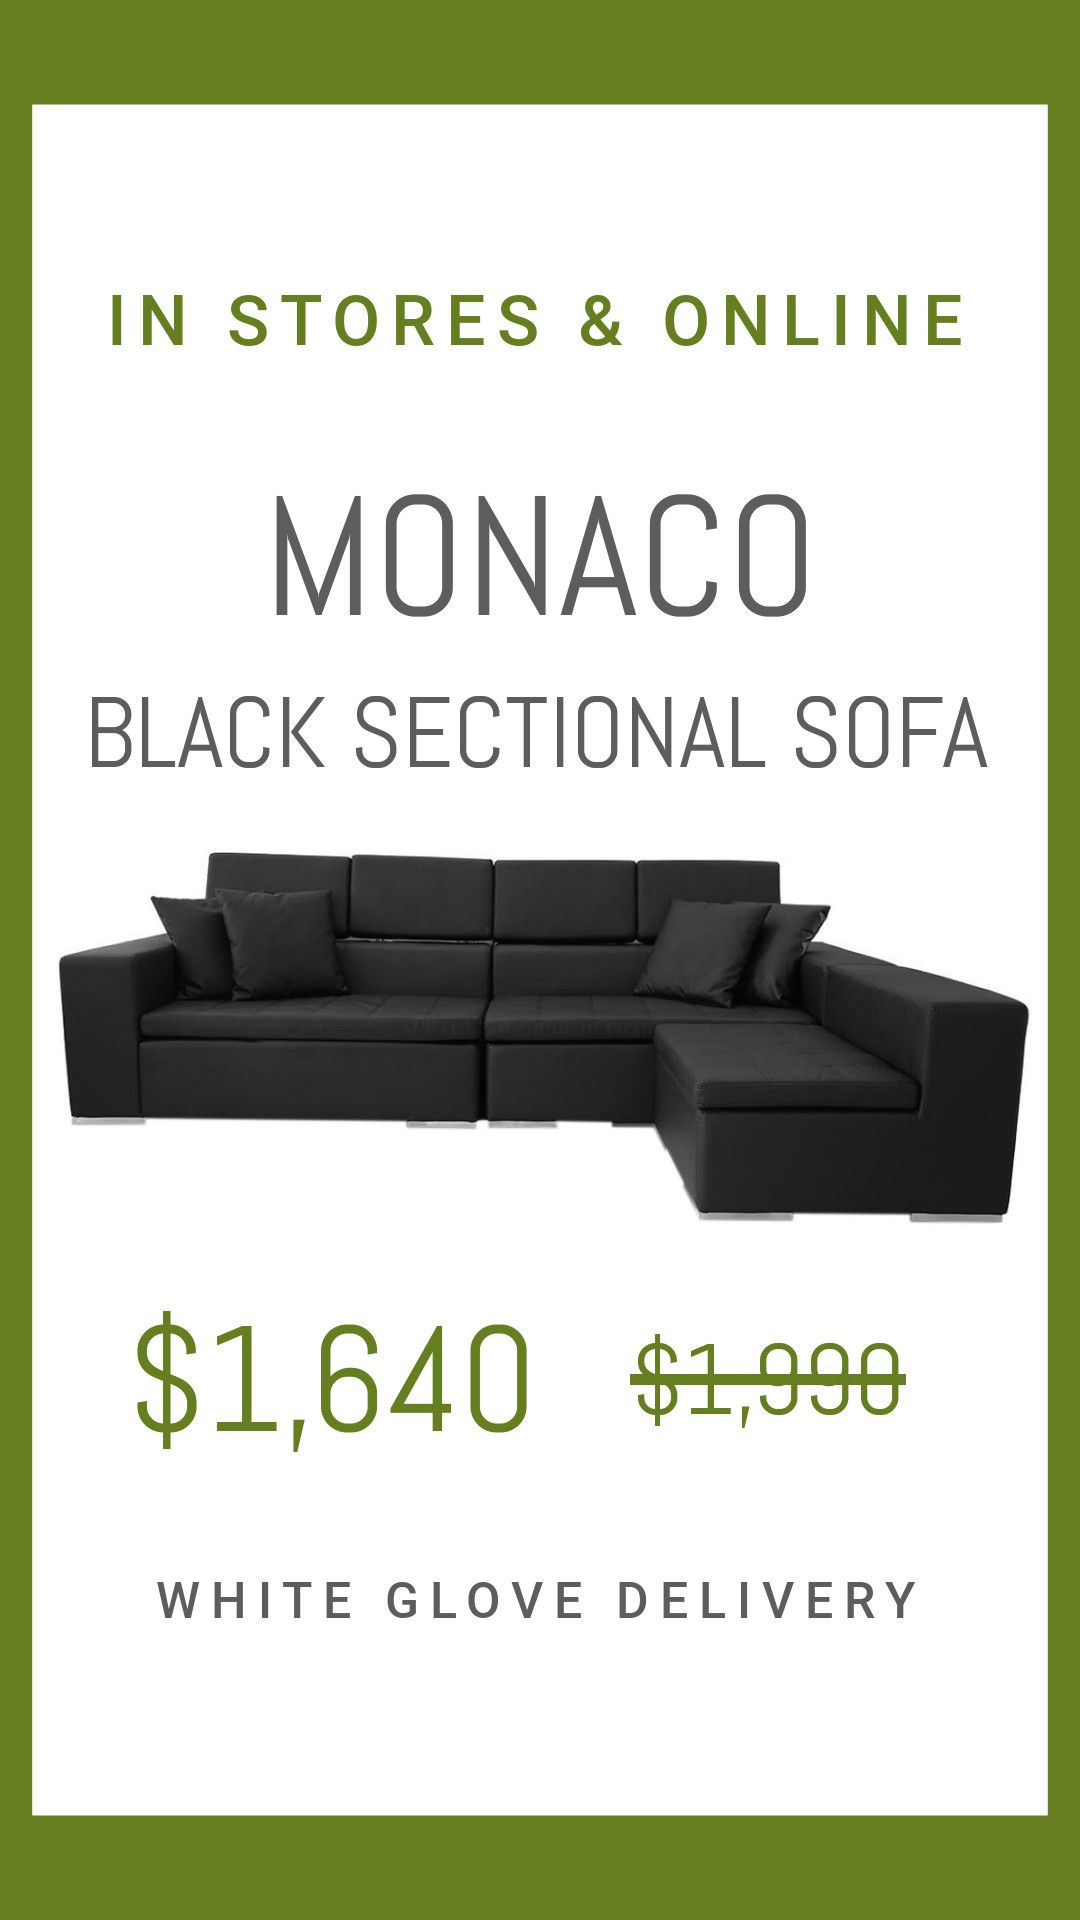 Tremendous Monaco Sectional Sofa Black Sale Black Leather Sofas Forskolin Free Trial Chair Design Images Forskolin Free Trialorg